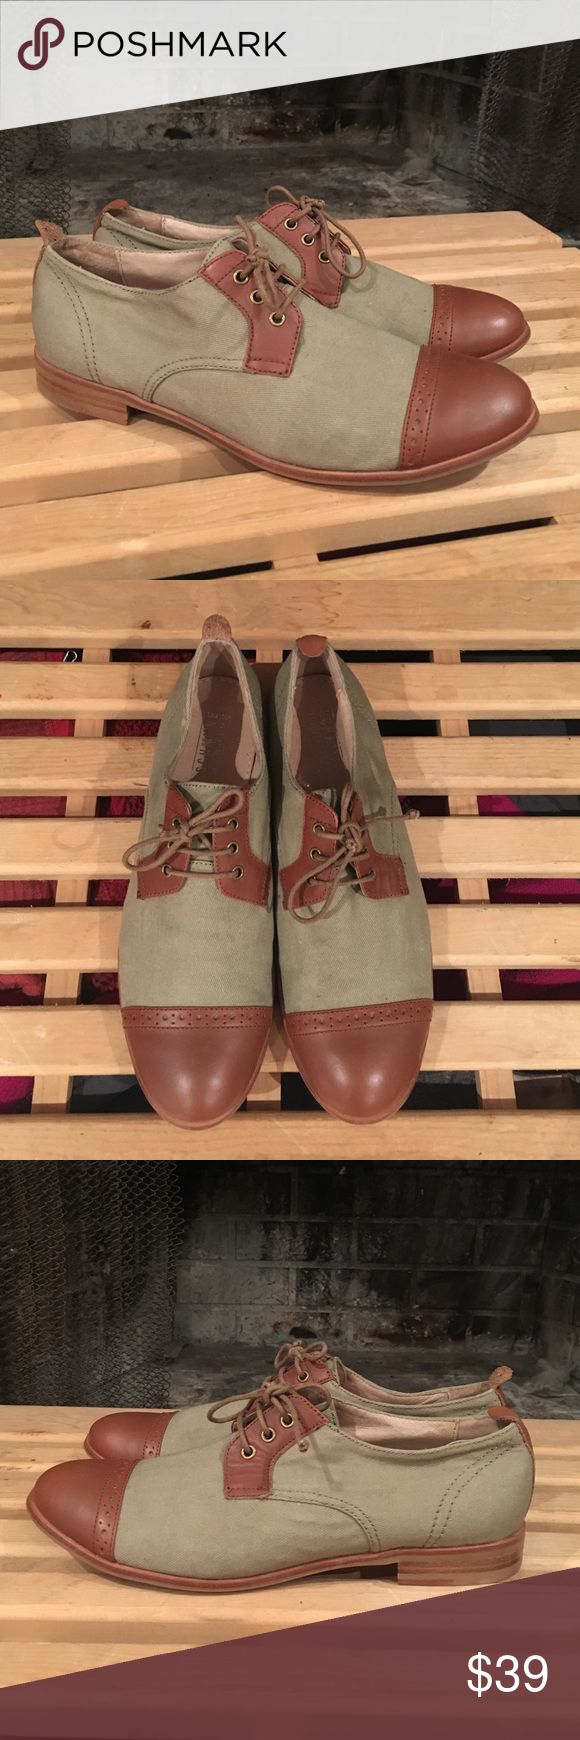 Sch**ve Heroïn Oxfords 😍 WOMENS SHOES The young brand Schmoove Heroine has a bohemian and folk inspirations. The Heroine line says over the seasons her independence and reveals a chic and liberated femininity, canvas and leather, bought on England for about $140 worn only twice, in good preowned condition no stains or holes 😍 Sch**ve Heroïne  Shoes